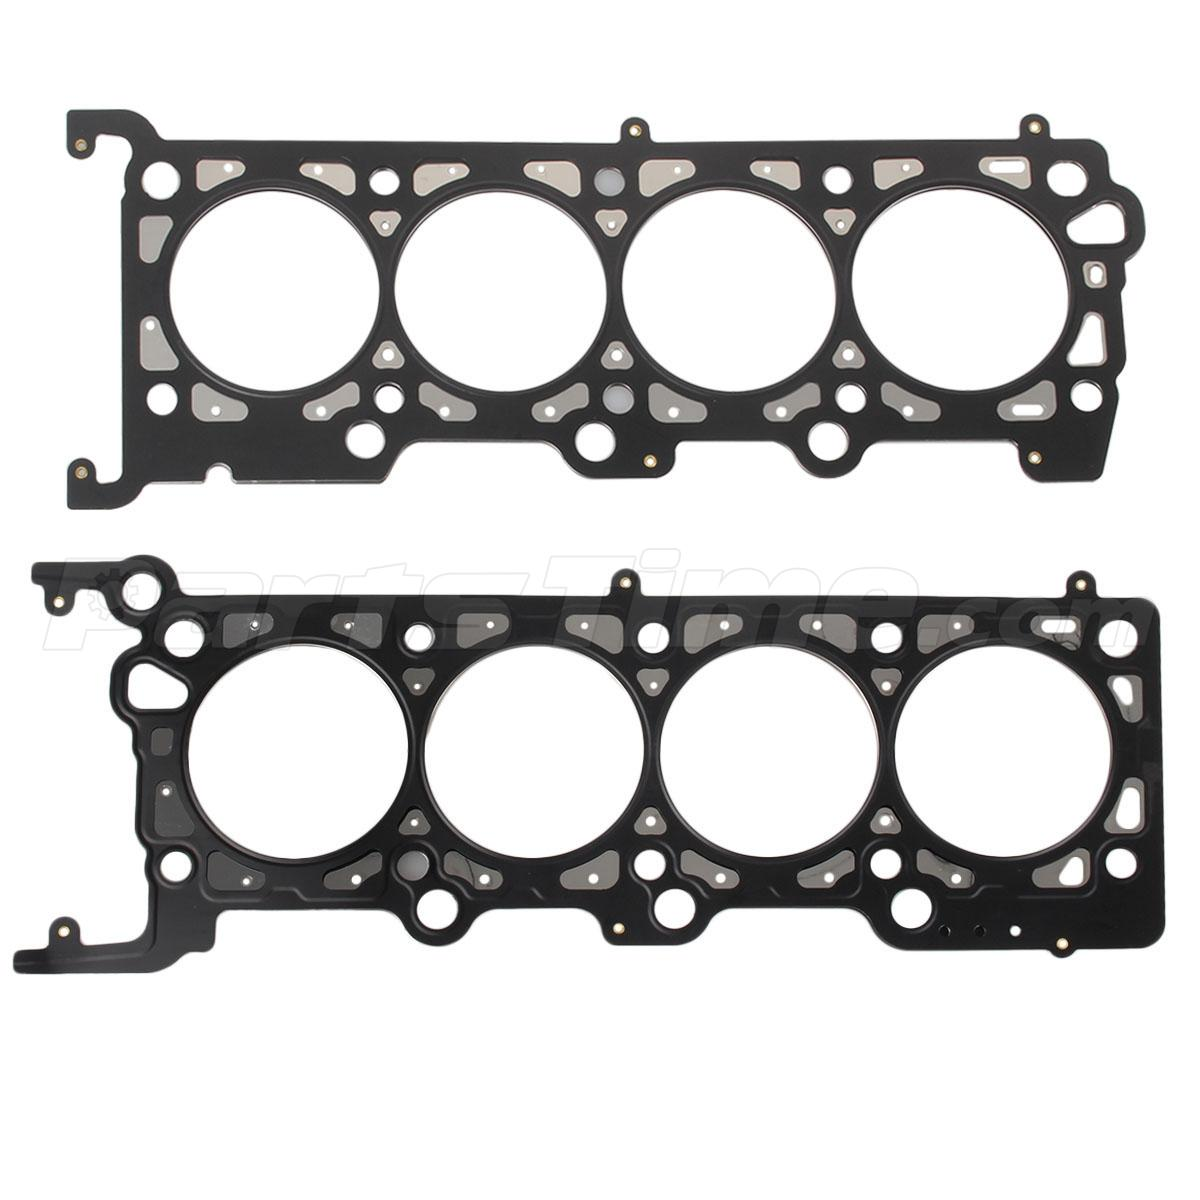 Ford 4 6 Cylinder Head Replacement: Engine Head Gasket Set For F150 F250 F350 Excursion E150 5